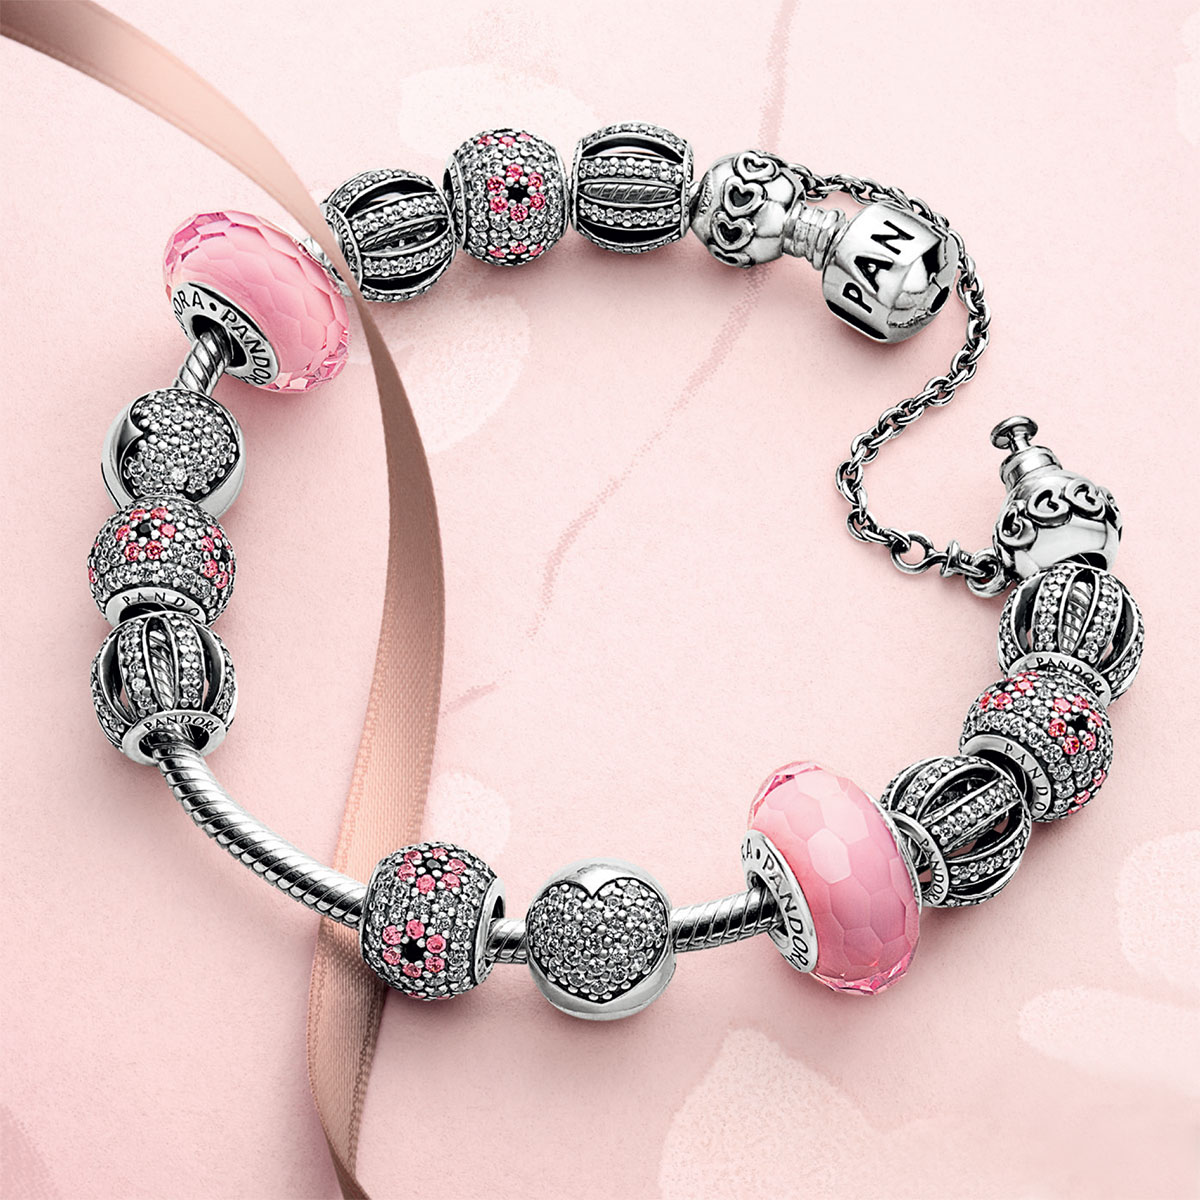 Pandora Love Connection Safety Chain